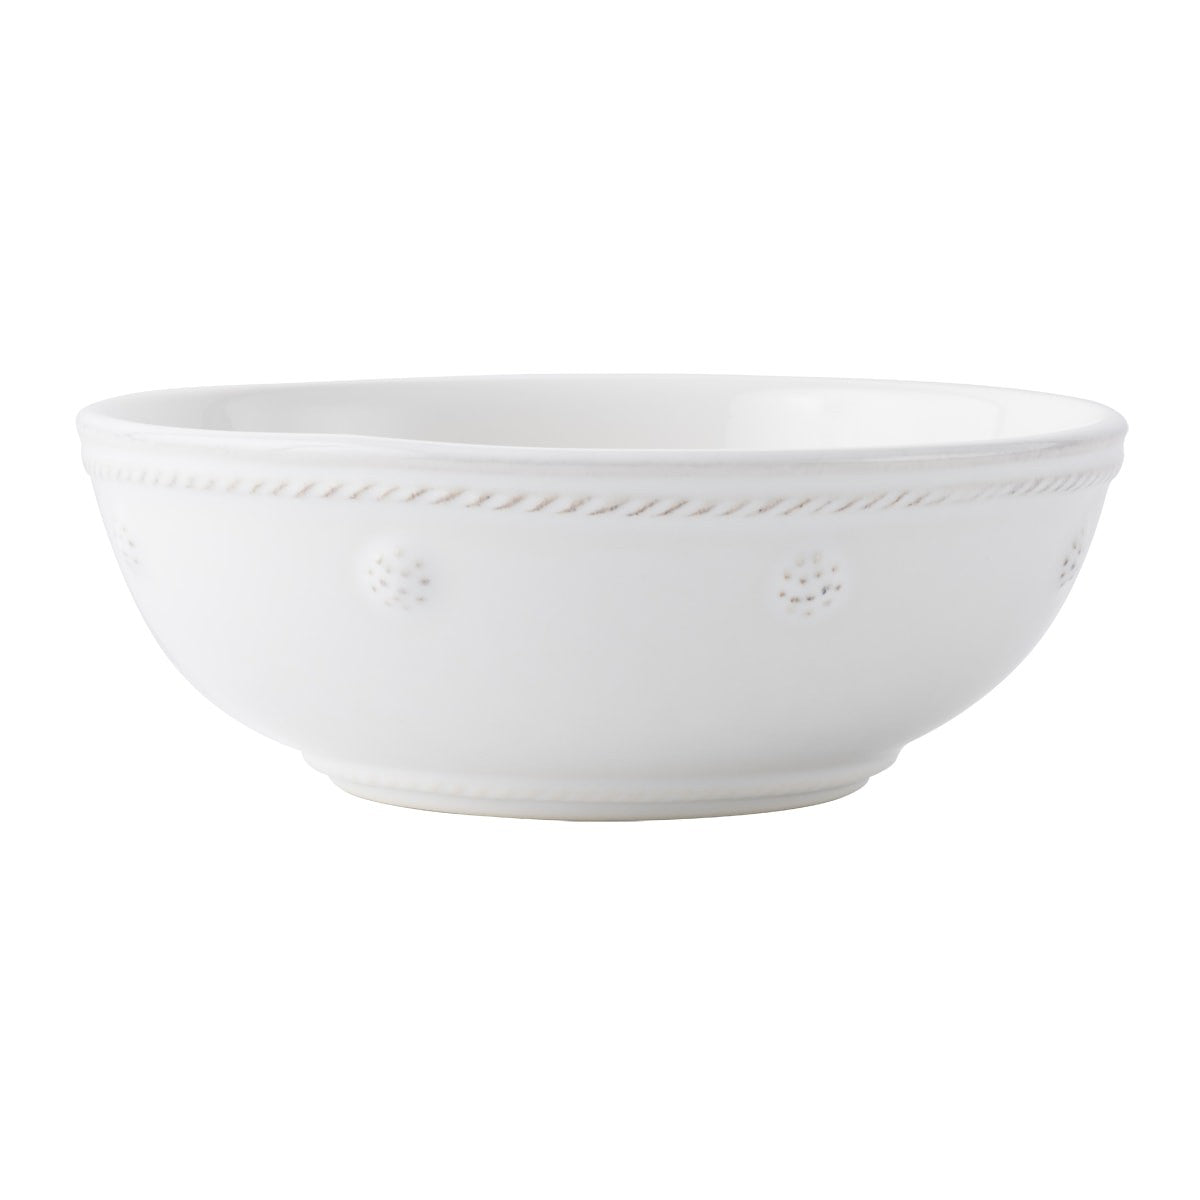 "Juliska - Berry & Thread Whitewash 6"" Coupe Bowl"